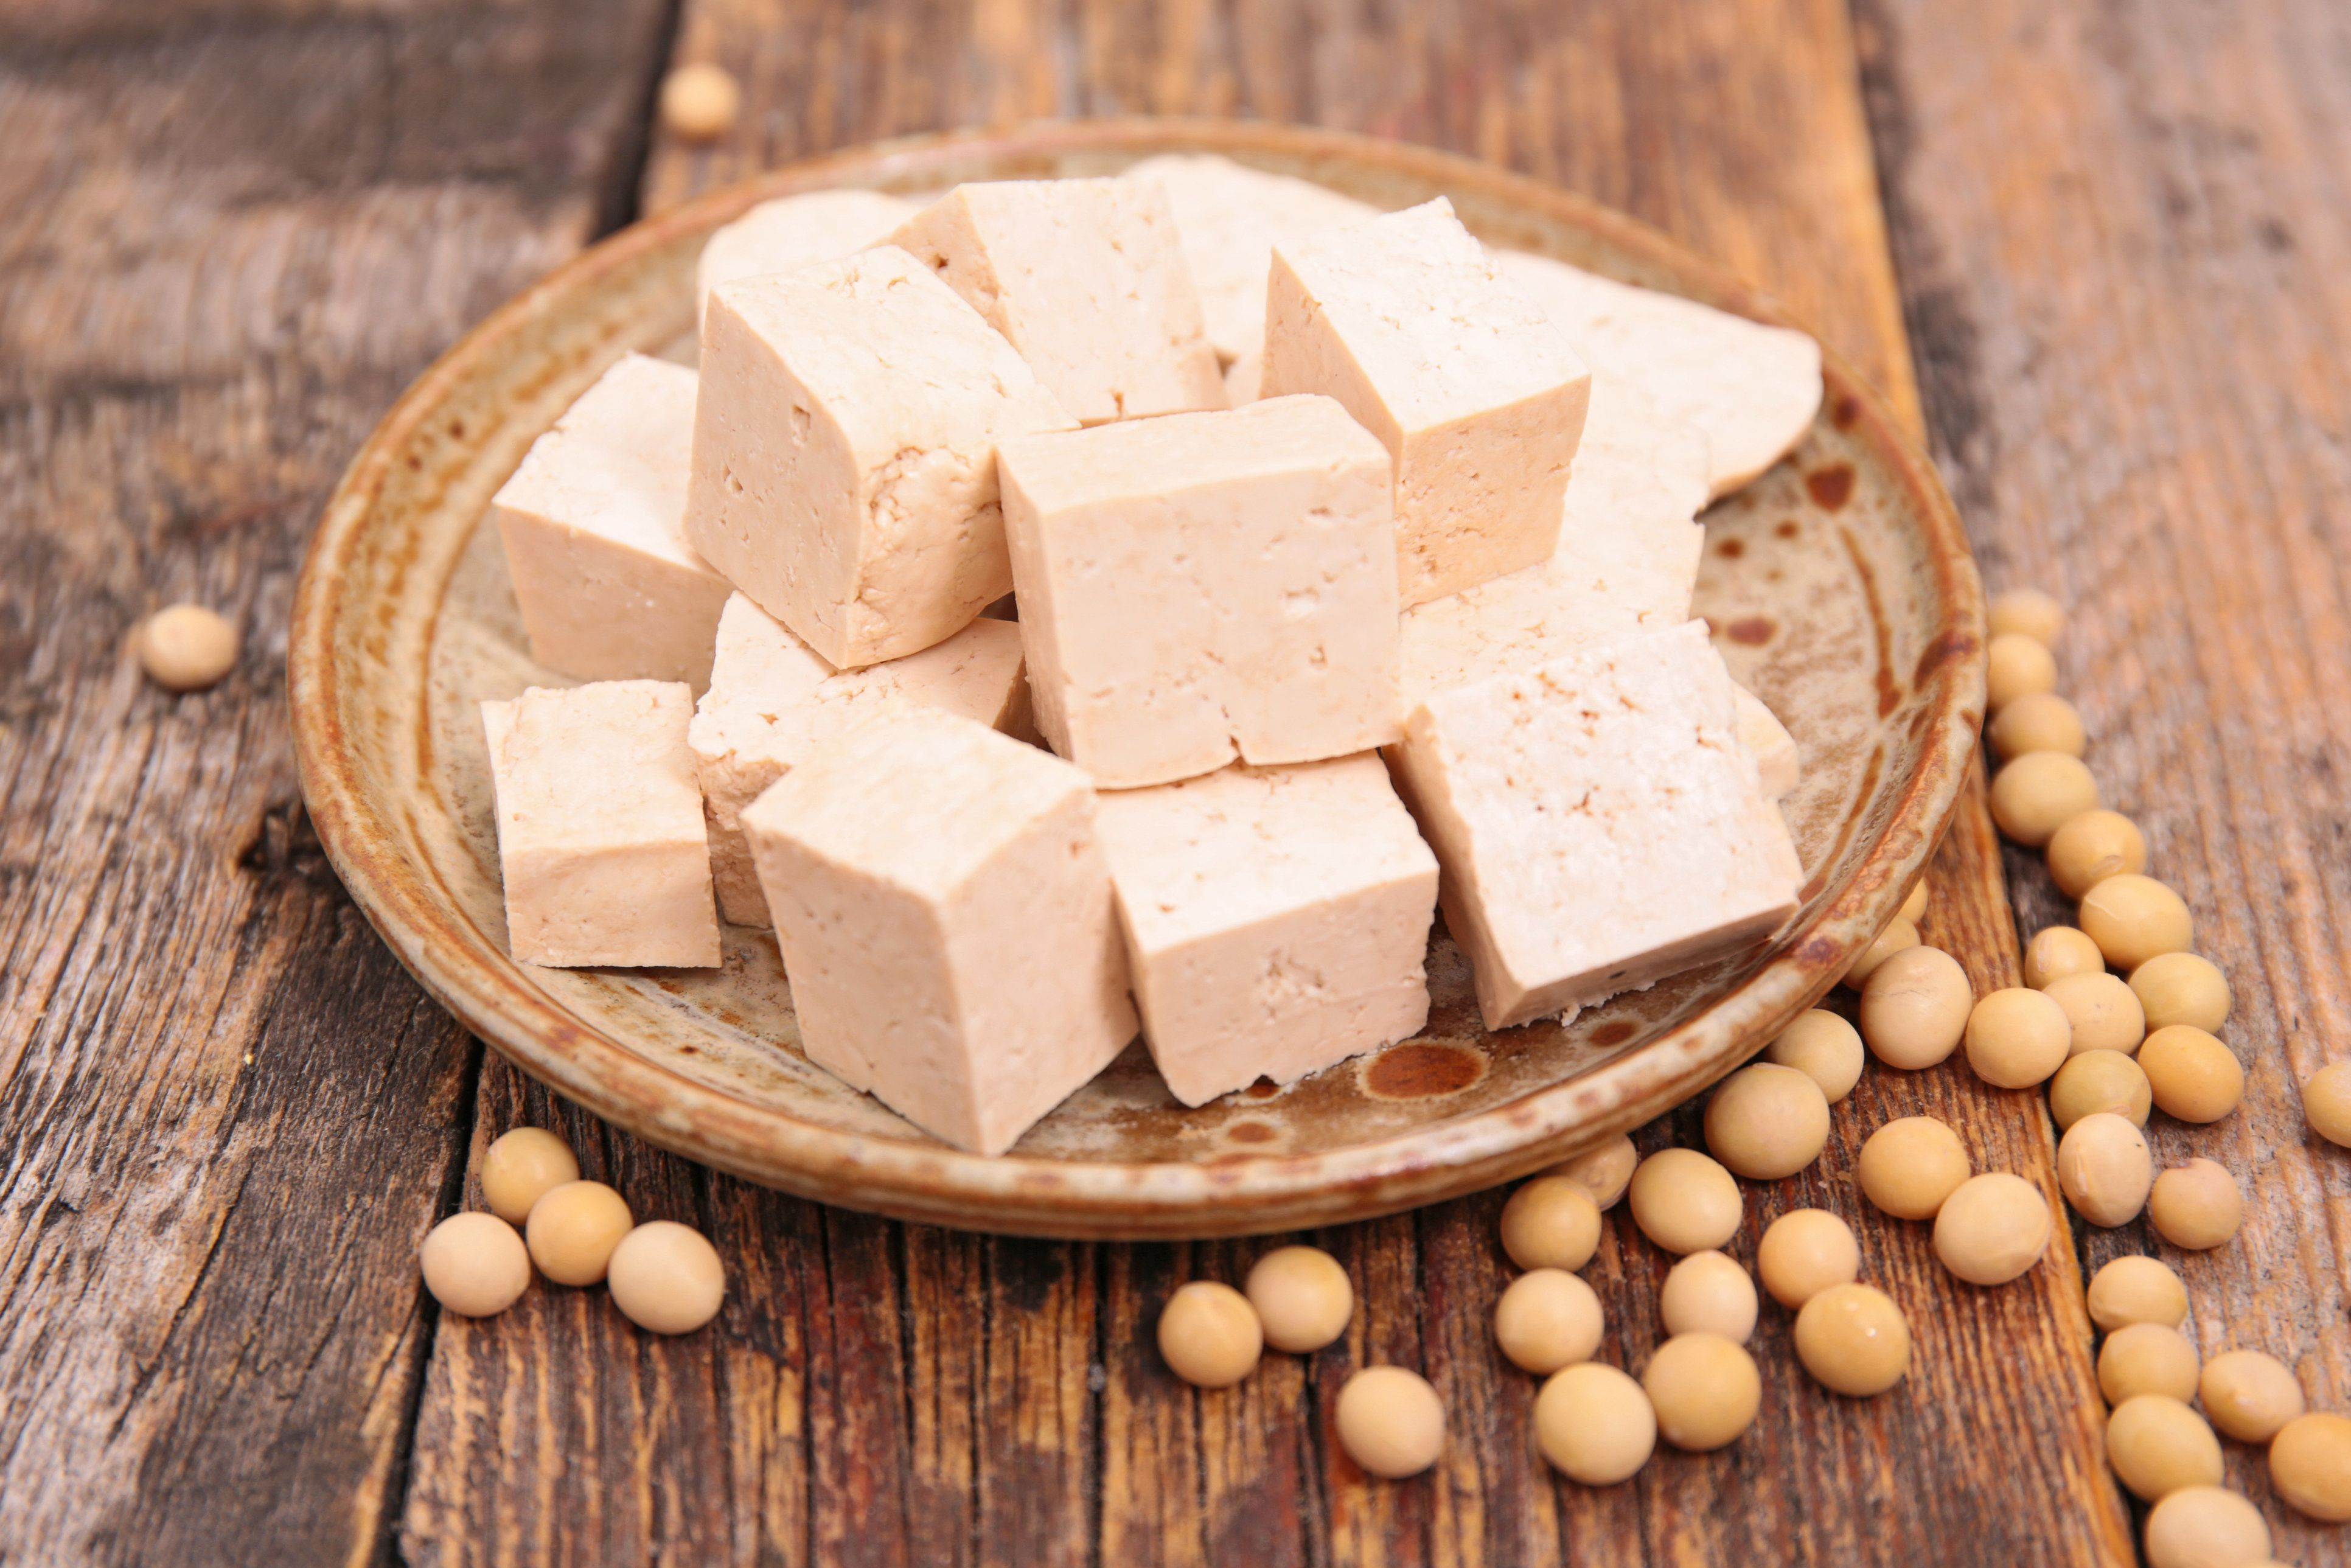 Soy Tied To Longer Life After Breast